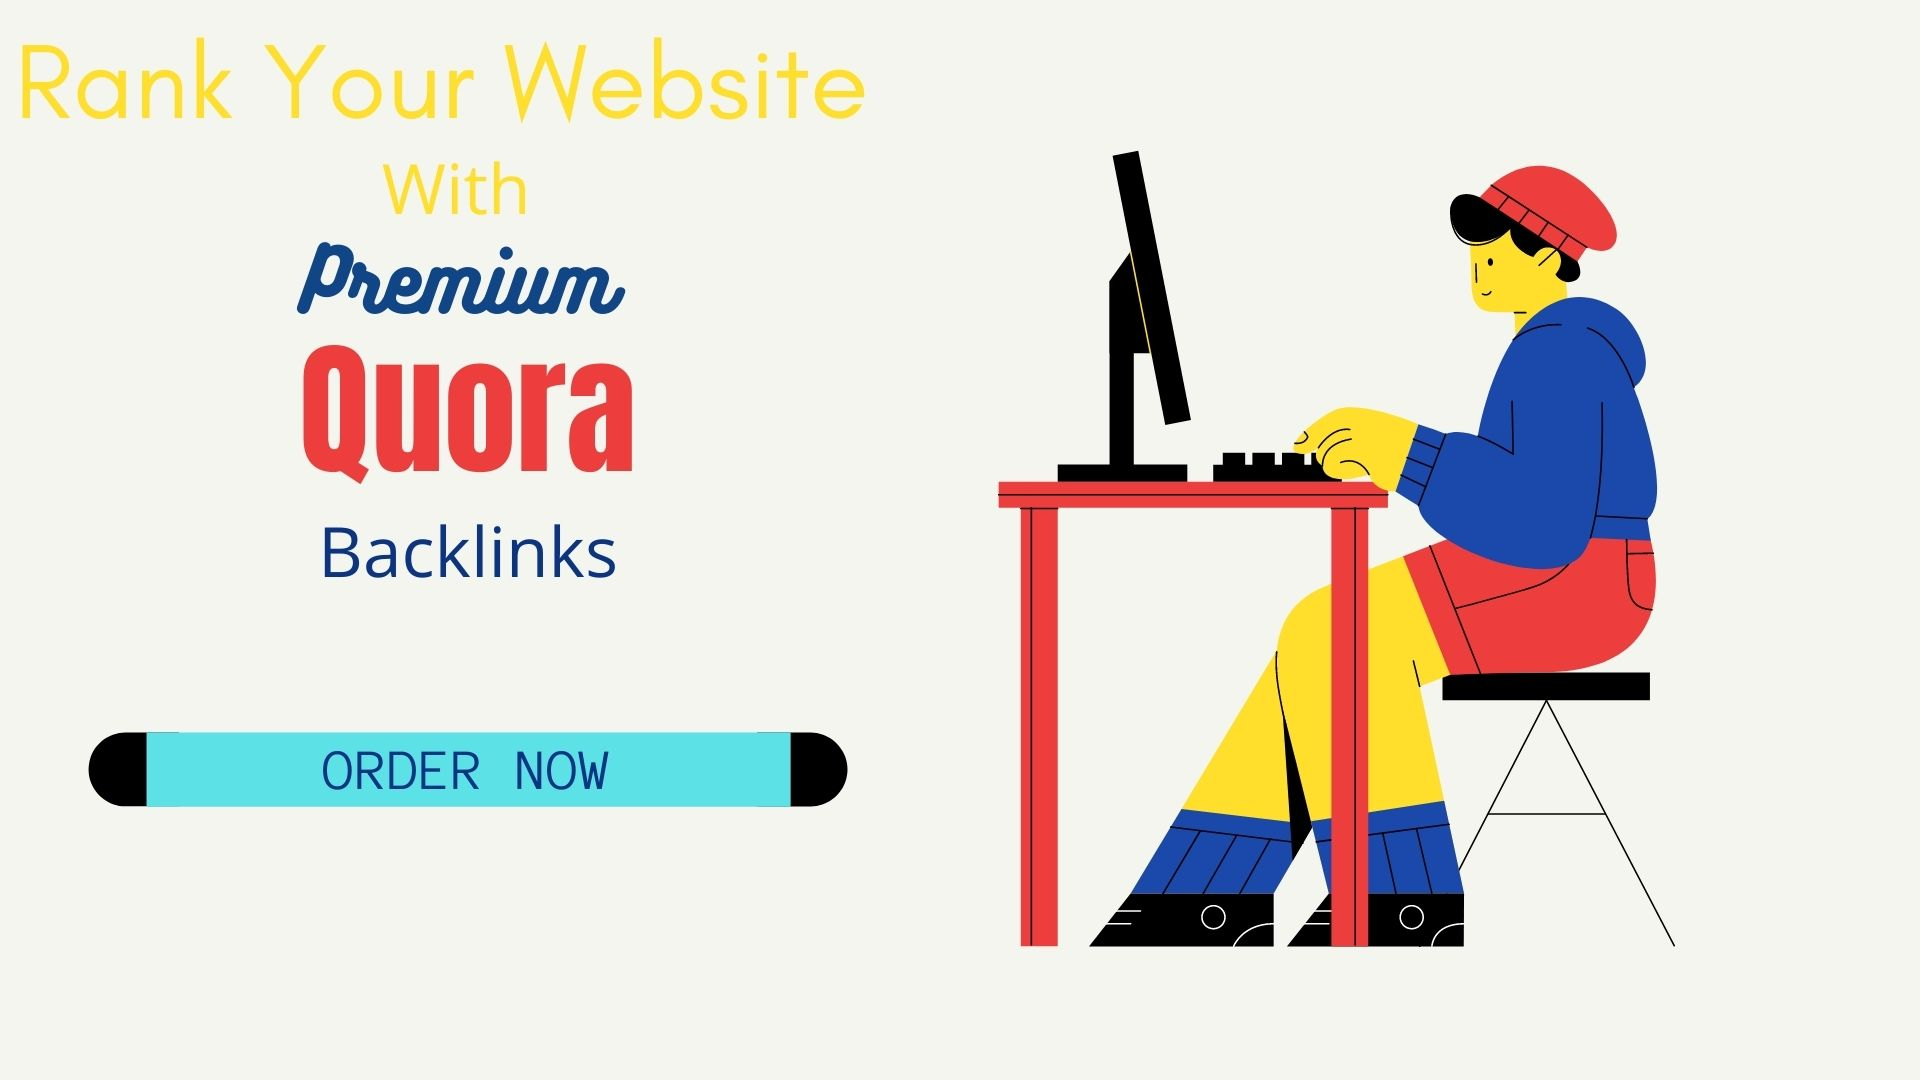 I will build 20 Quora Backlinks to promote website